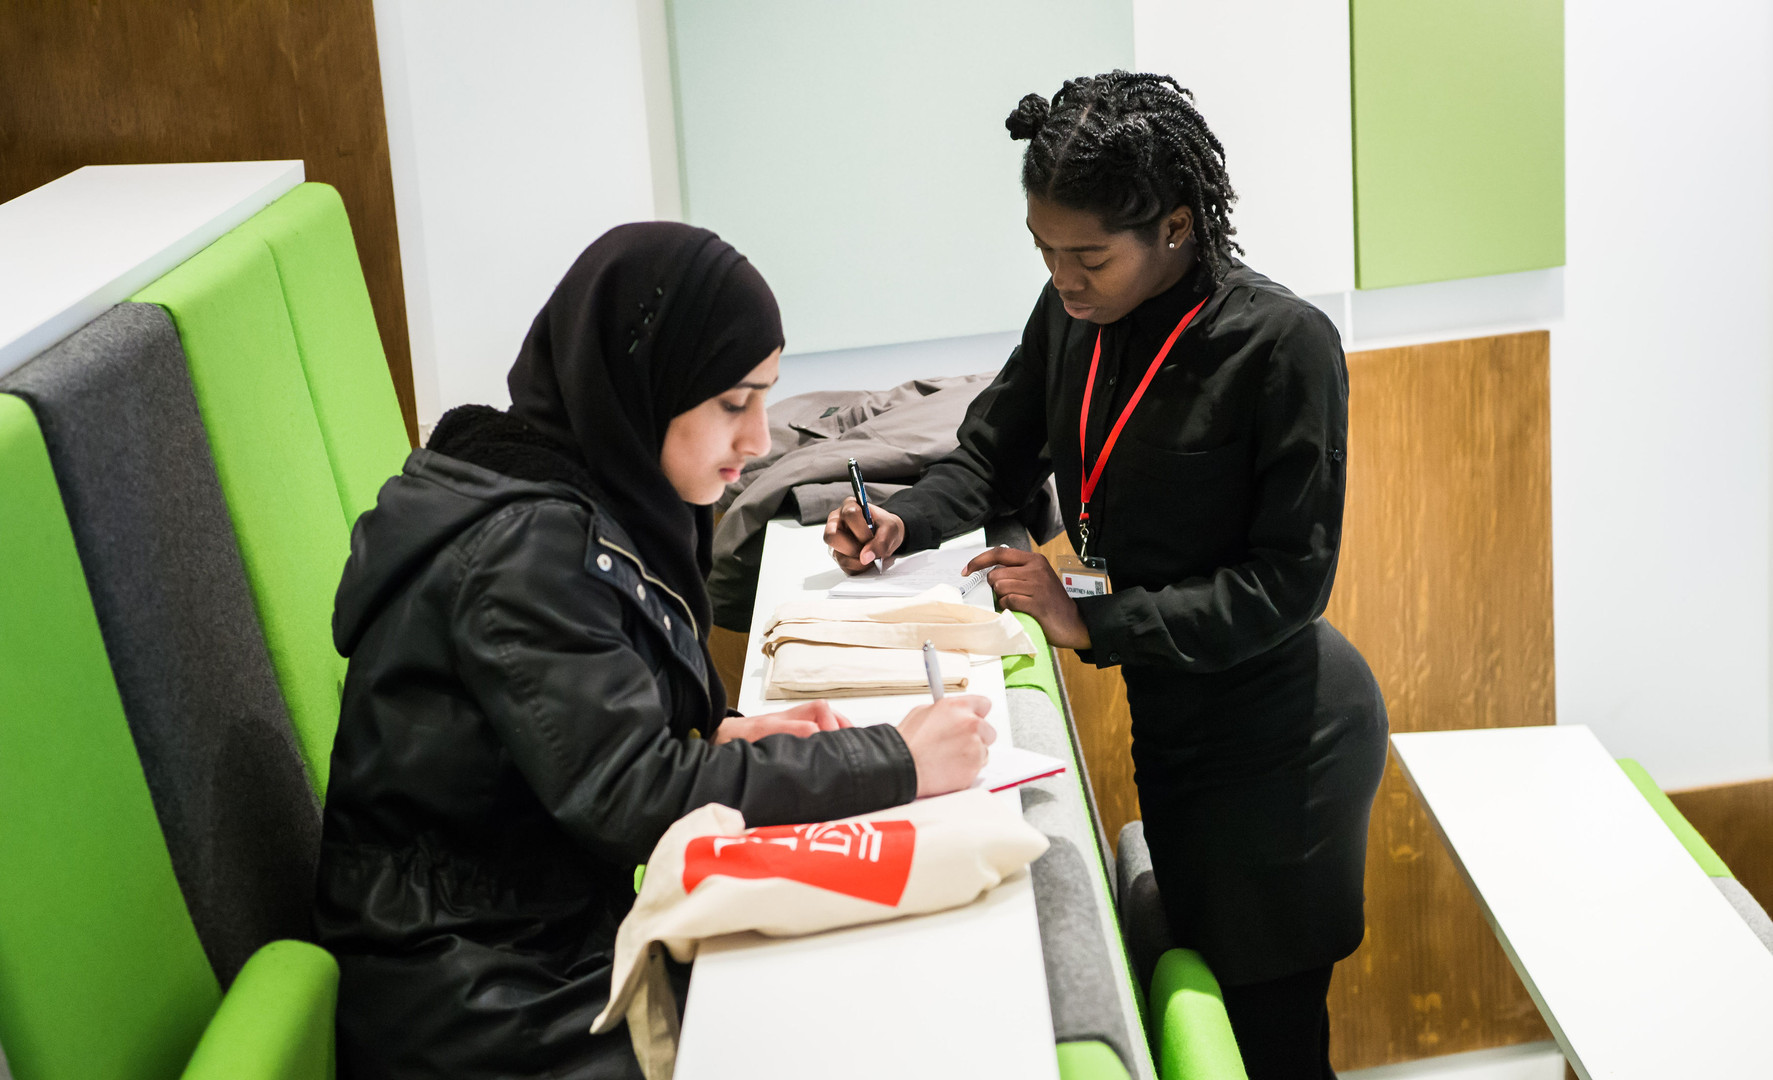 KCLWP_MedicalConference-27.04.19-179.jpg